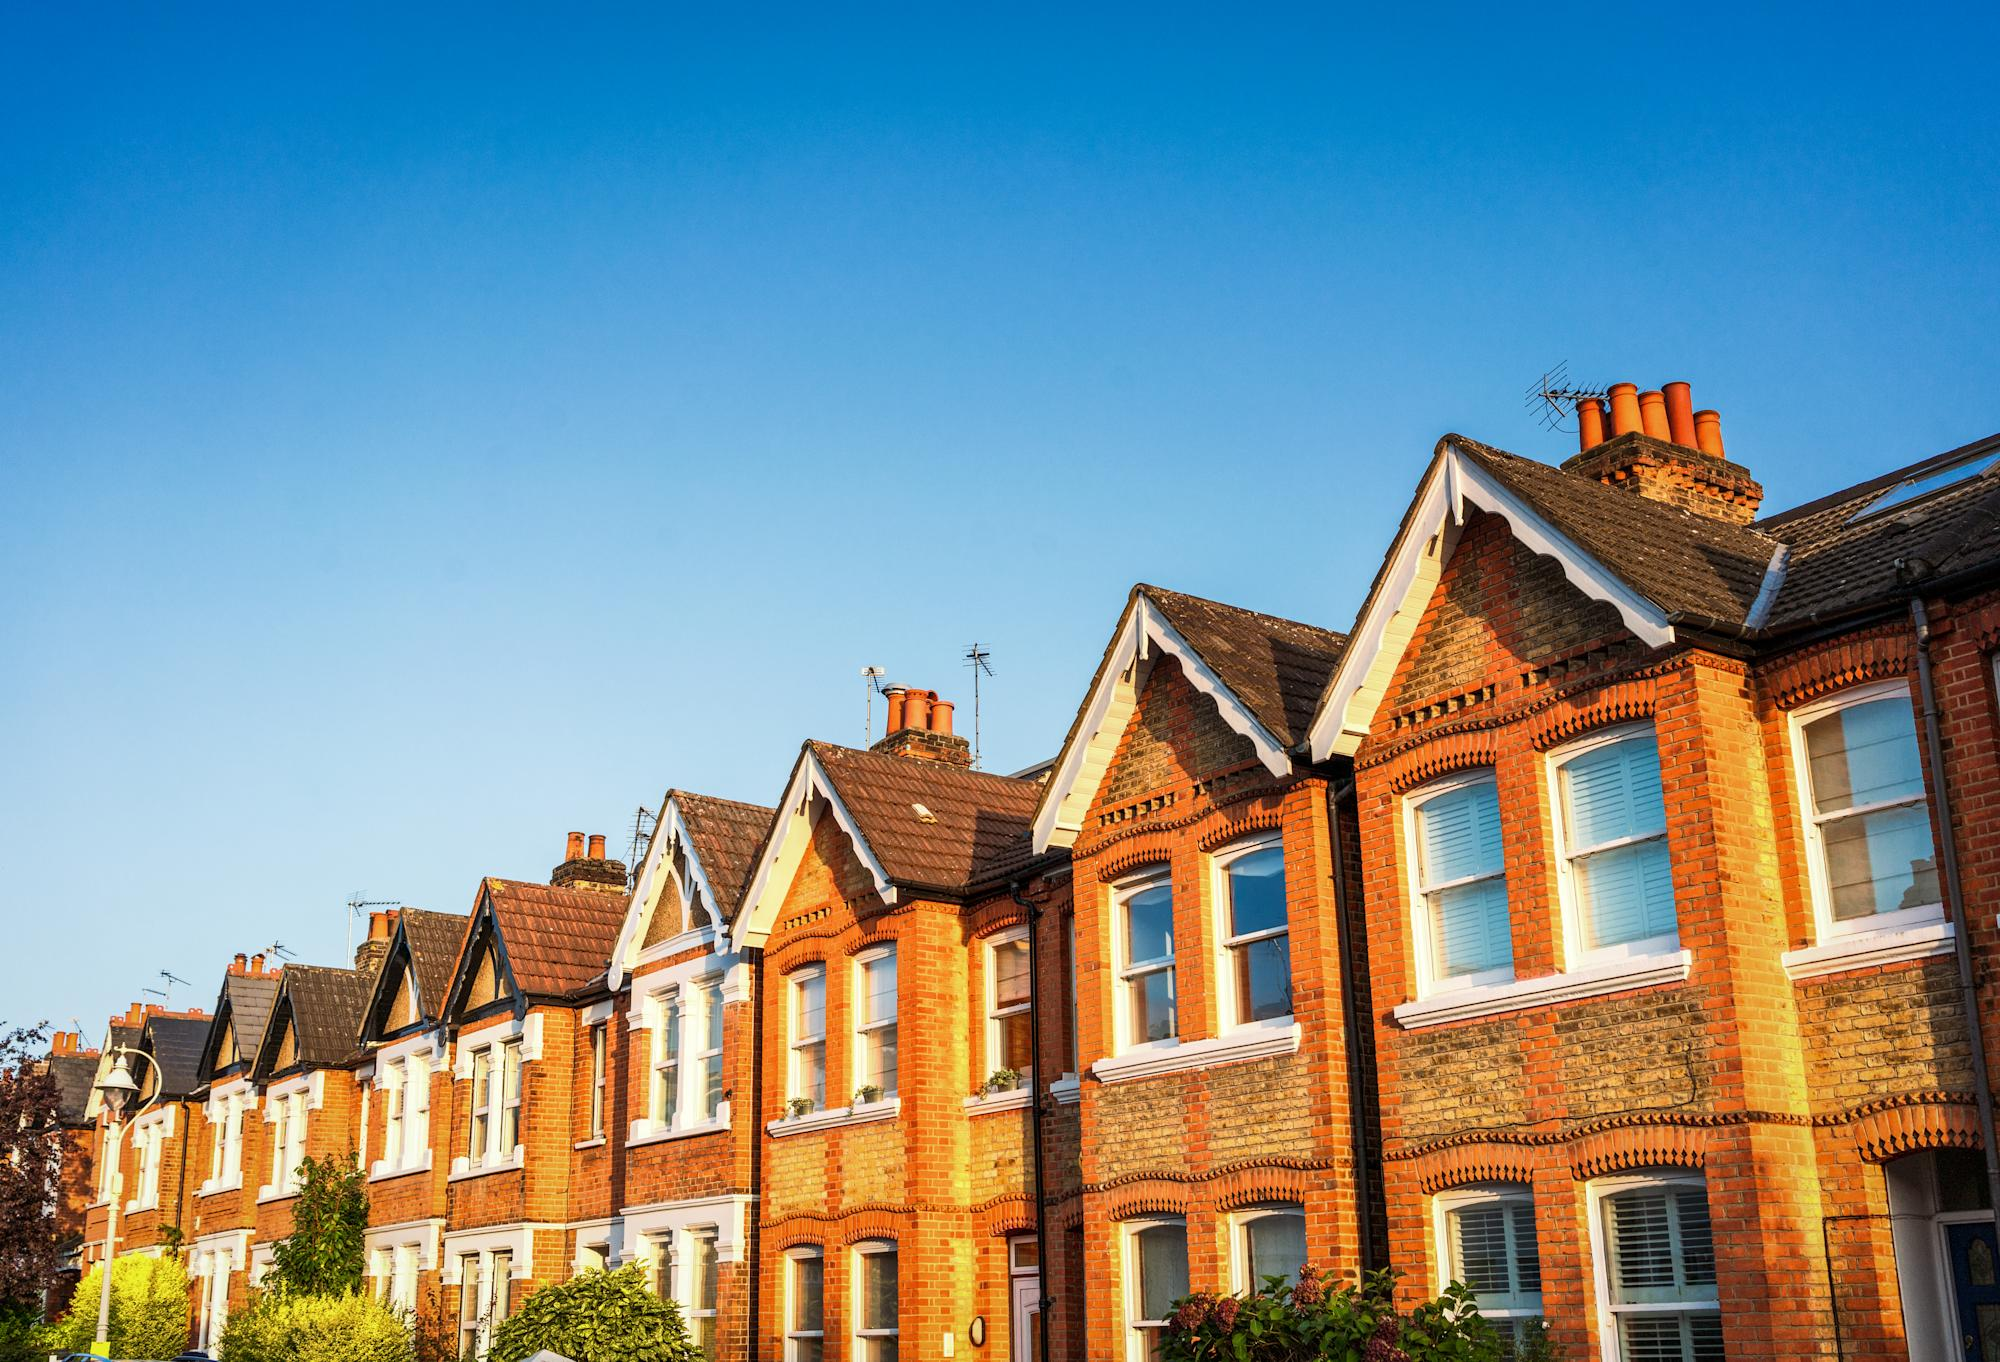 Most Brits in favour of stamp duty holiday extension